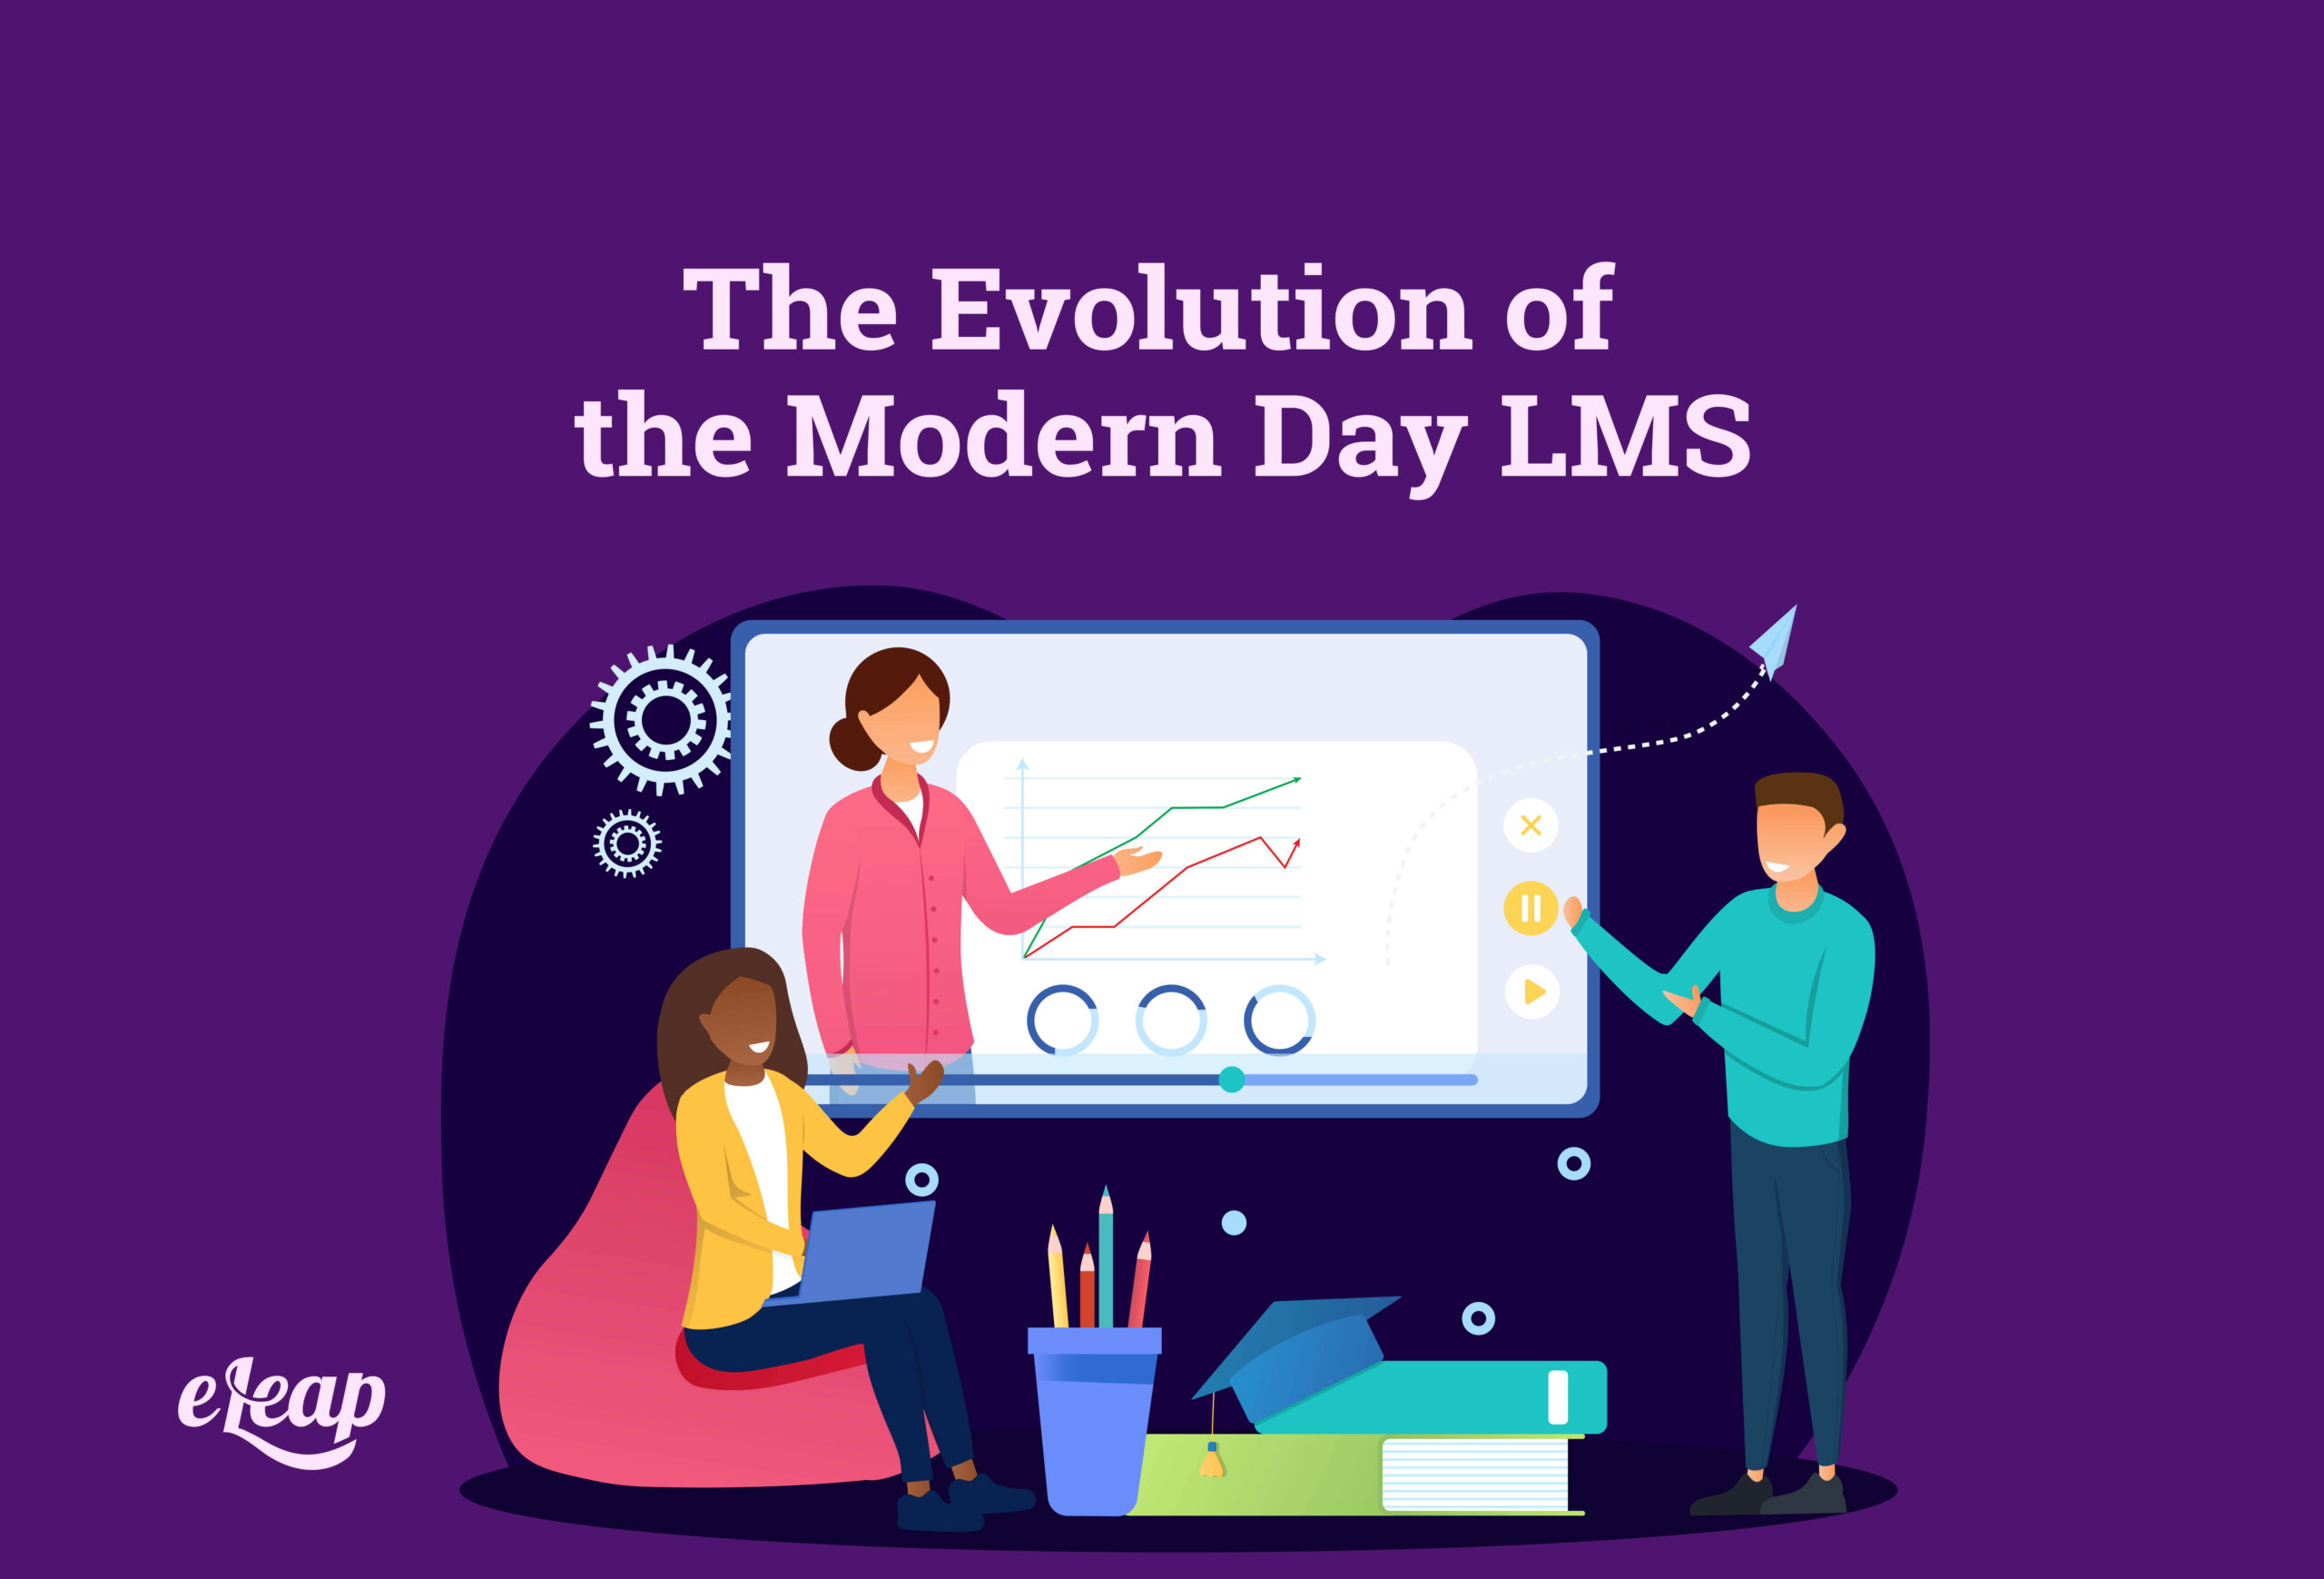 The Evolution of the Modern Day LMS